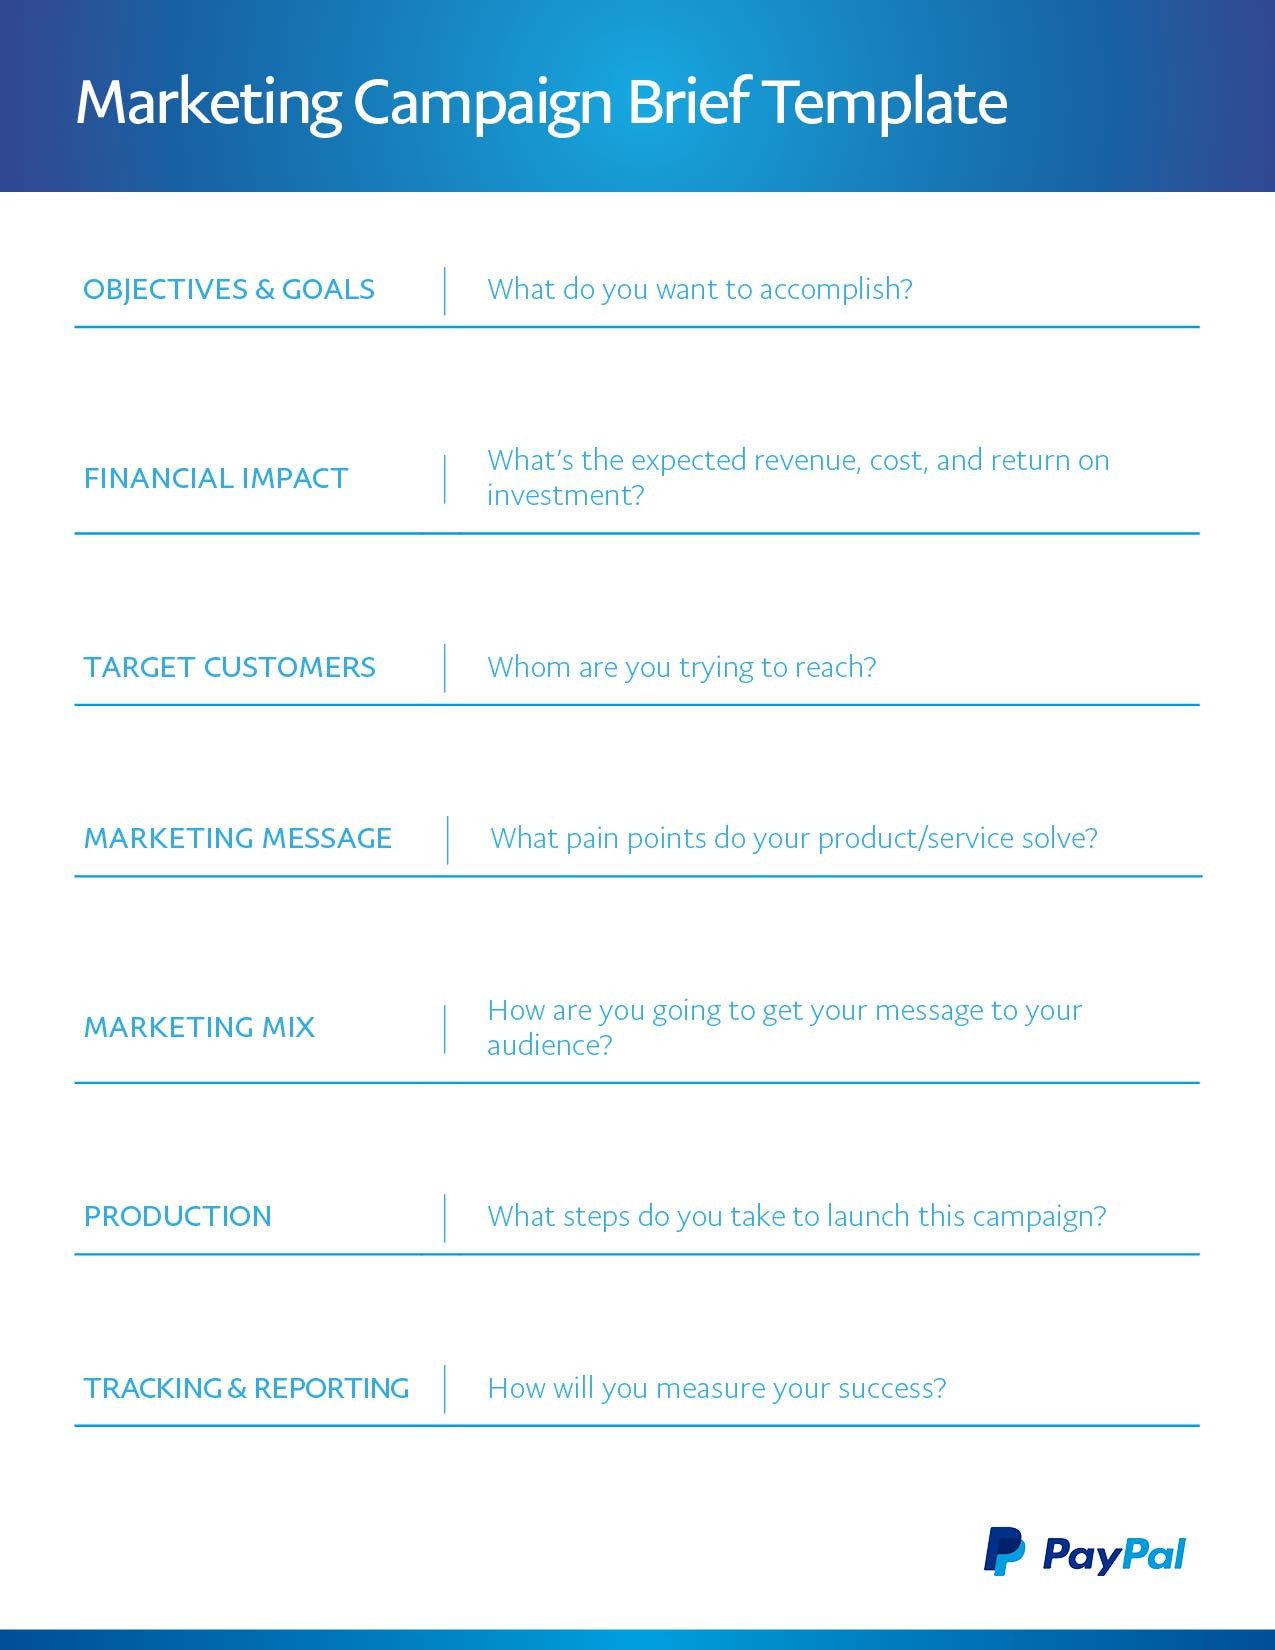 The Basics Of A Successful Marketing Campaign Brief Paypal